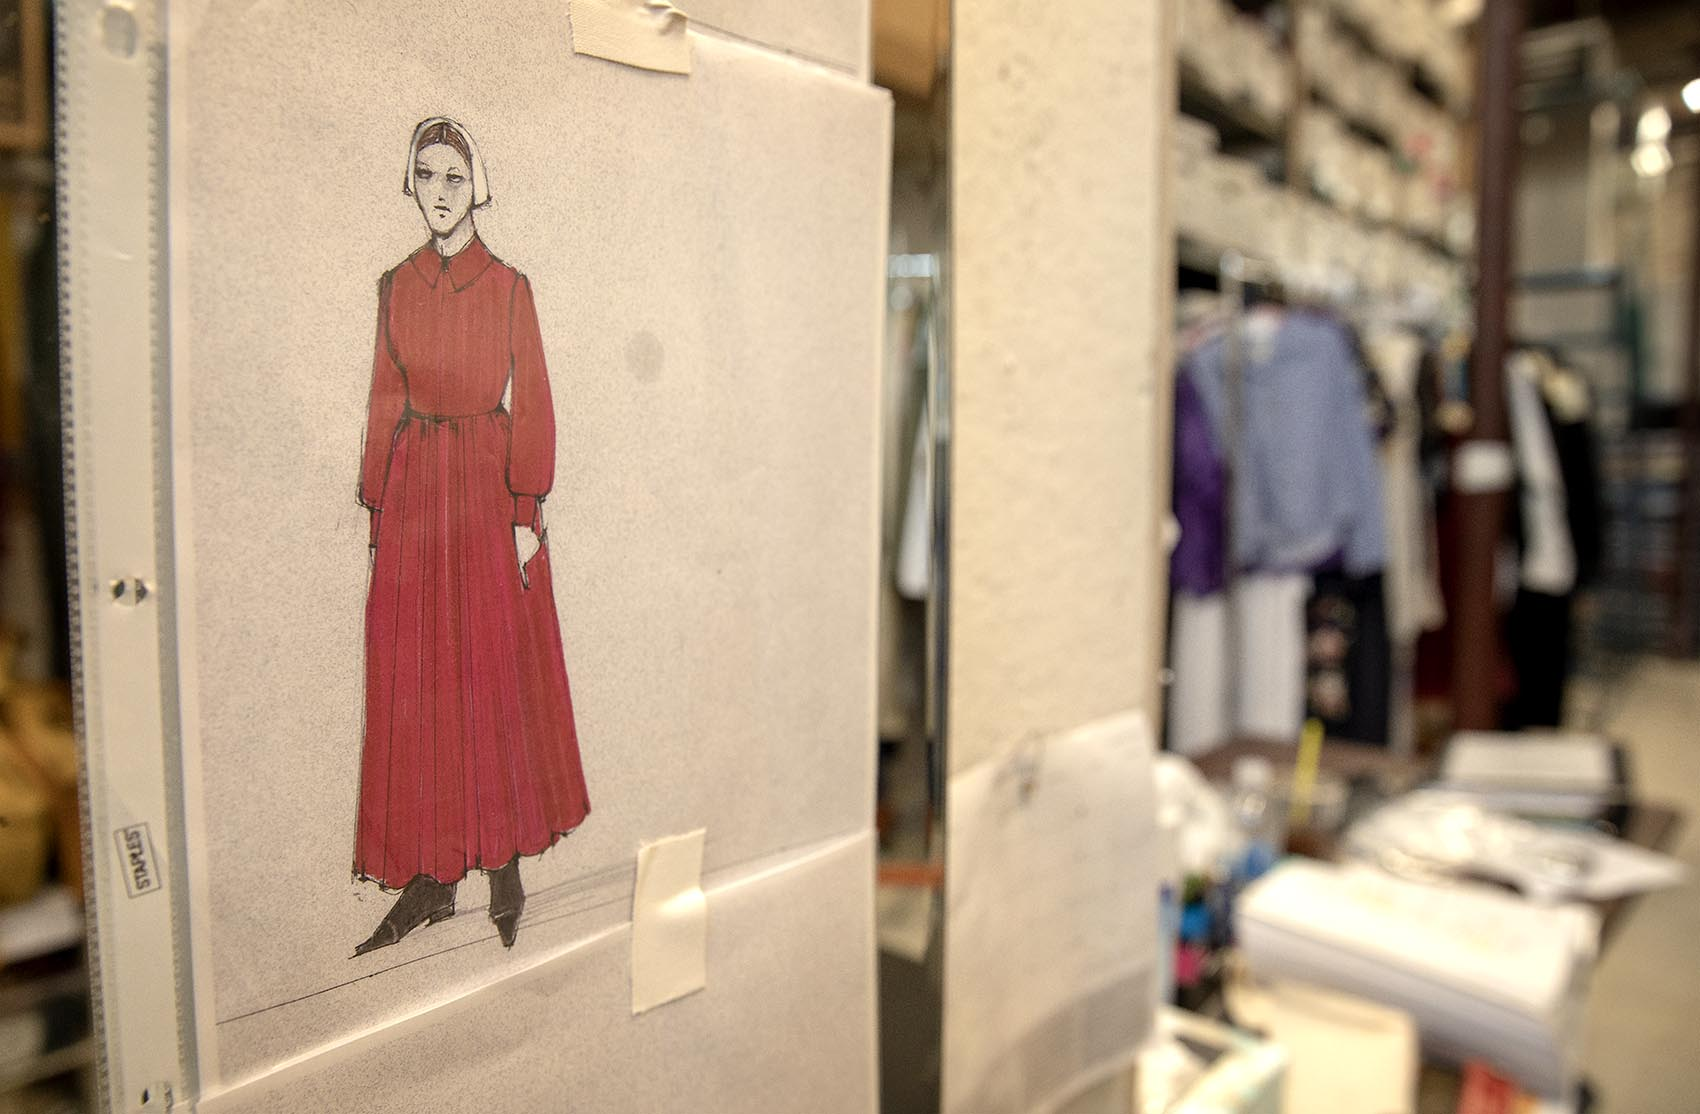 Dressing A Composer The Handmaid S Tale And A Sea Of Blood Red Dresses Comes Home